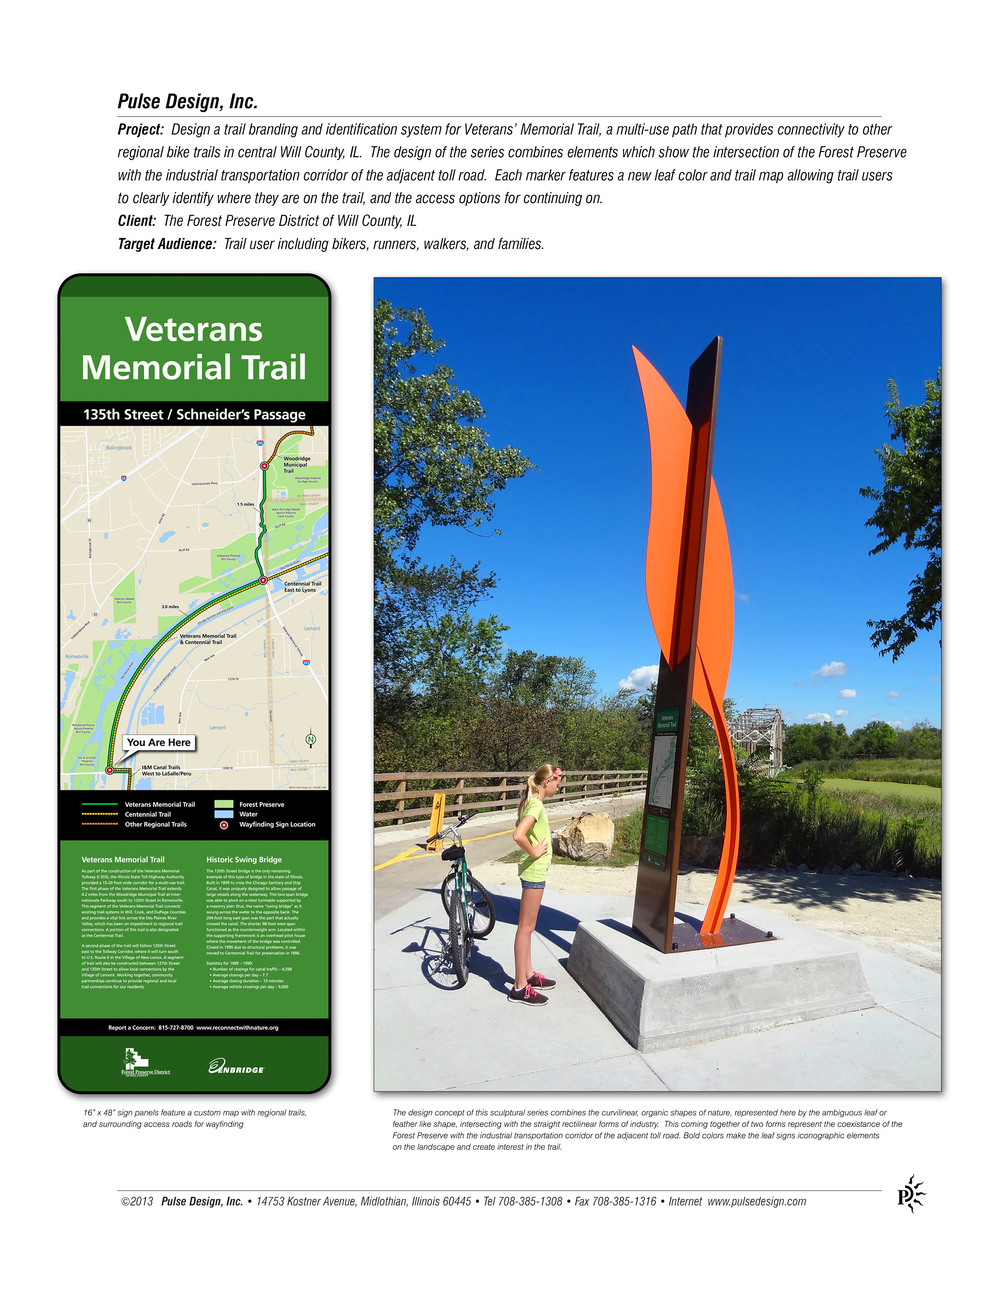 Veterans-Memorial-Trail-Sign-Photo-Orange-Pulse-Design-Inc.jpg